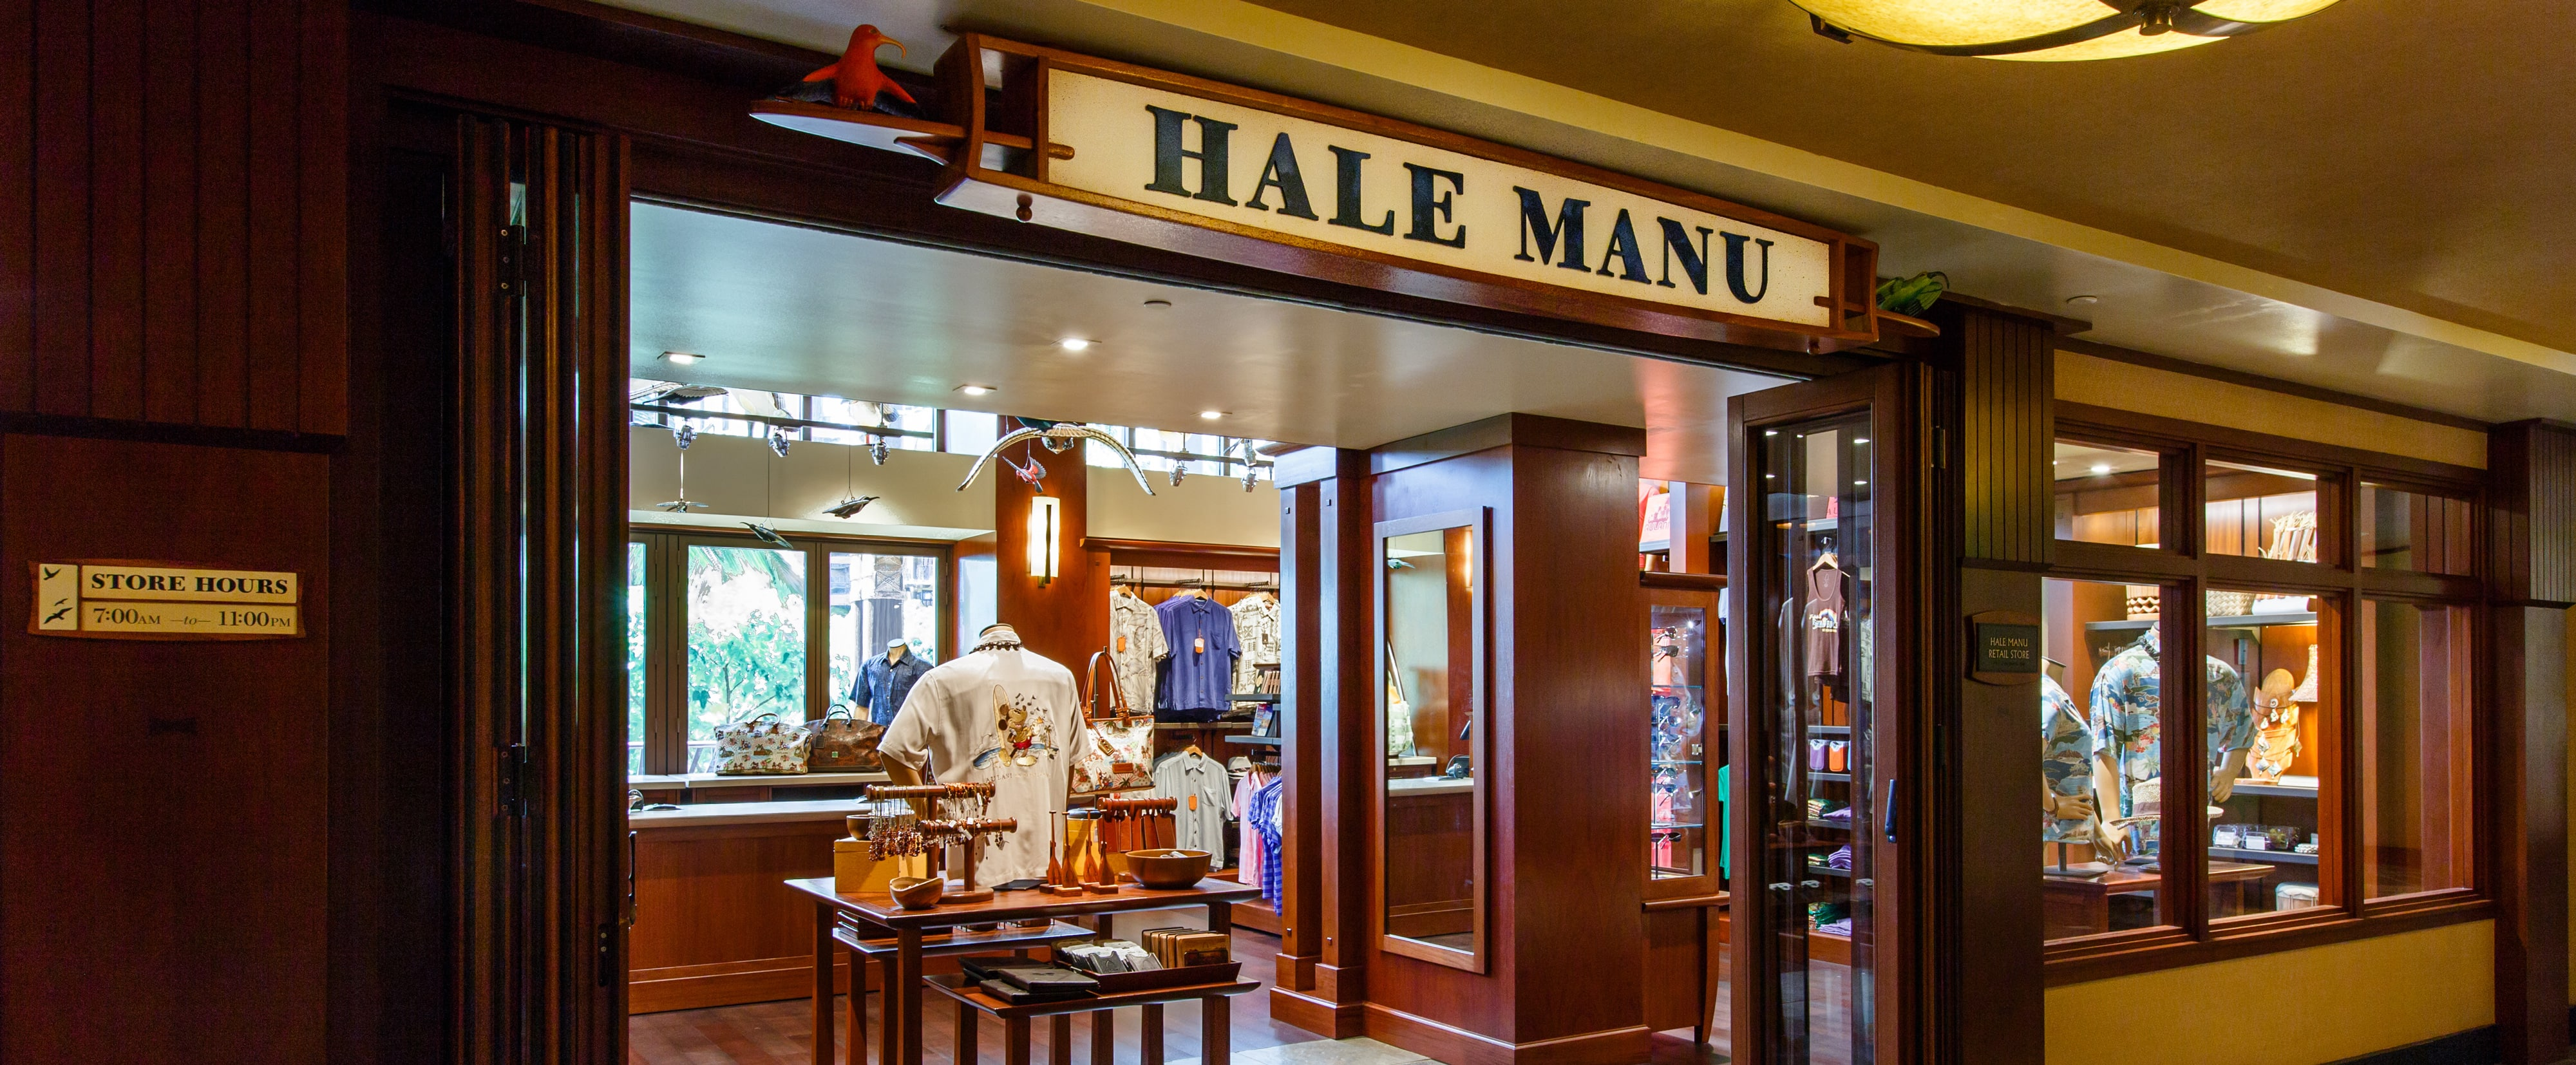 ... The wood-paneled exterior of Hale Manu boutique, with displays of resort wear and ...